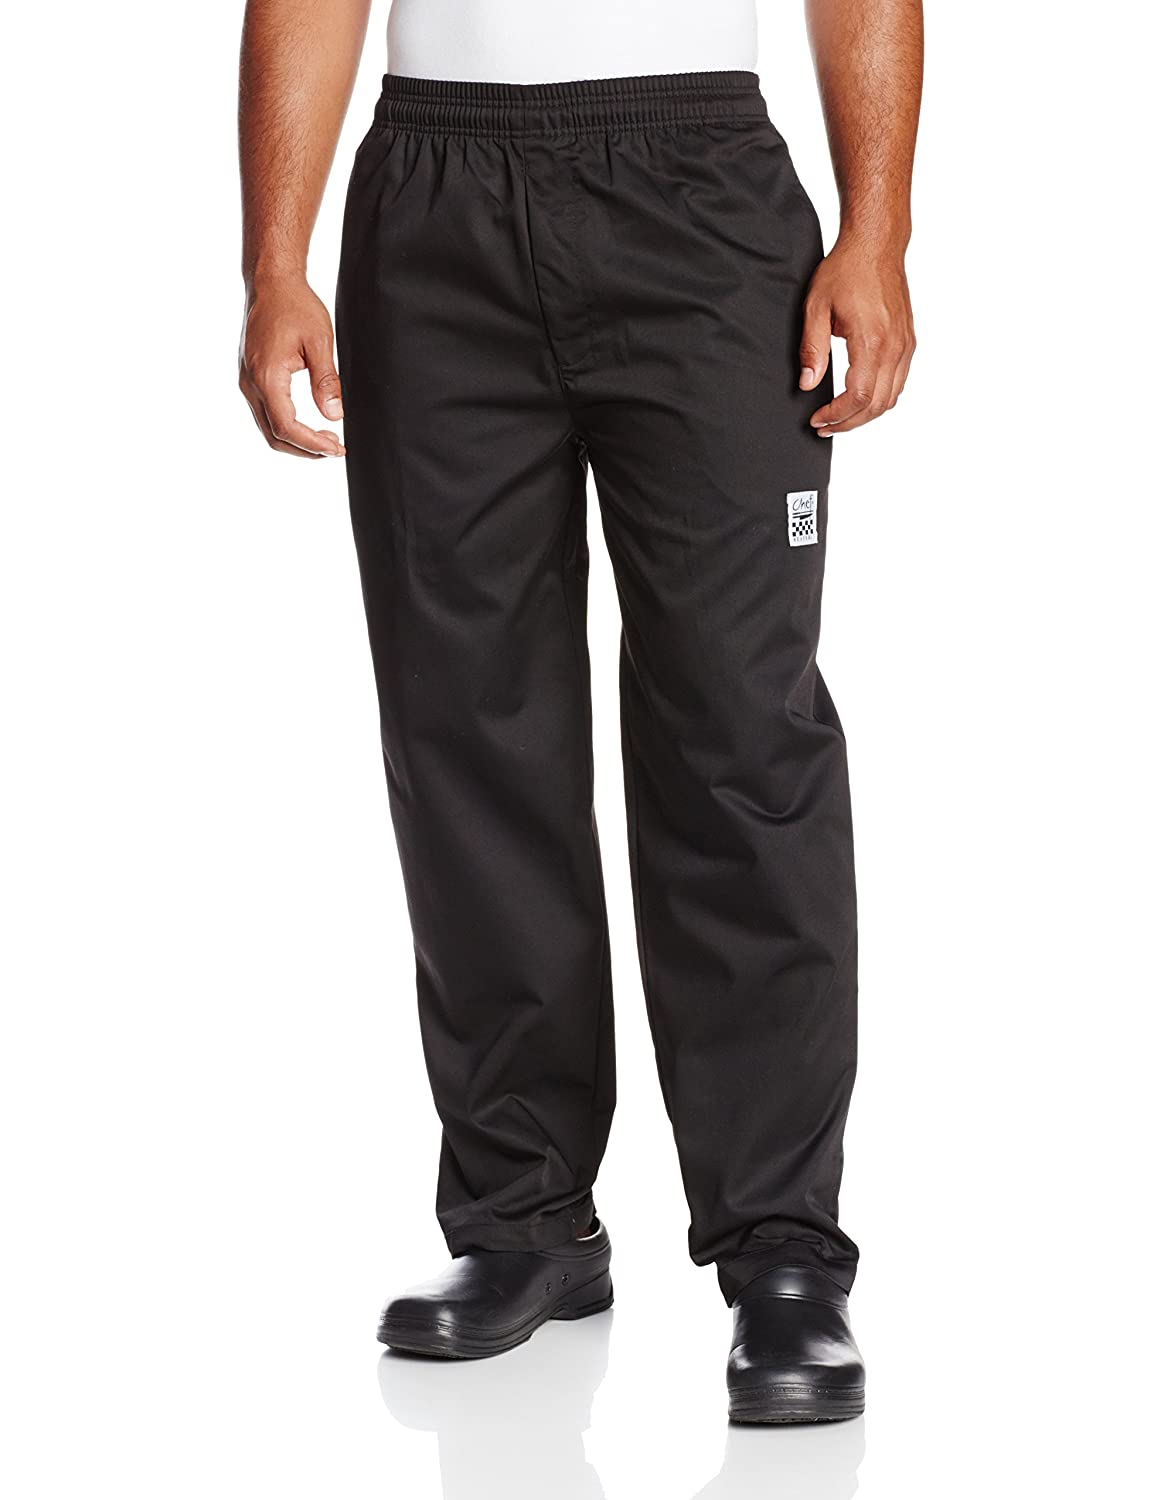 Chef Revival P002BK Poly Cotton Blend E-Z Fit Pant with 2 Side and 2 Rear Pockets, Small, Black San Jamar P002BK-S